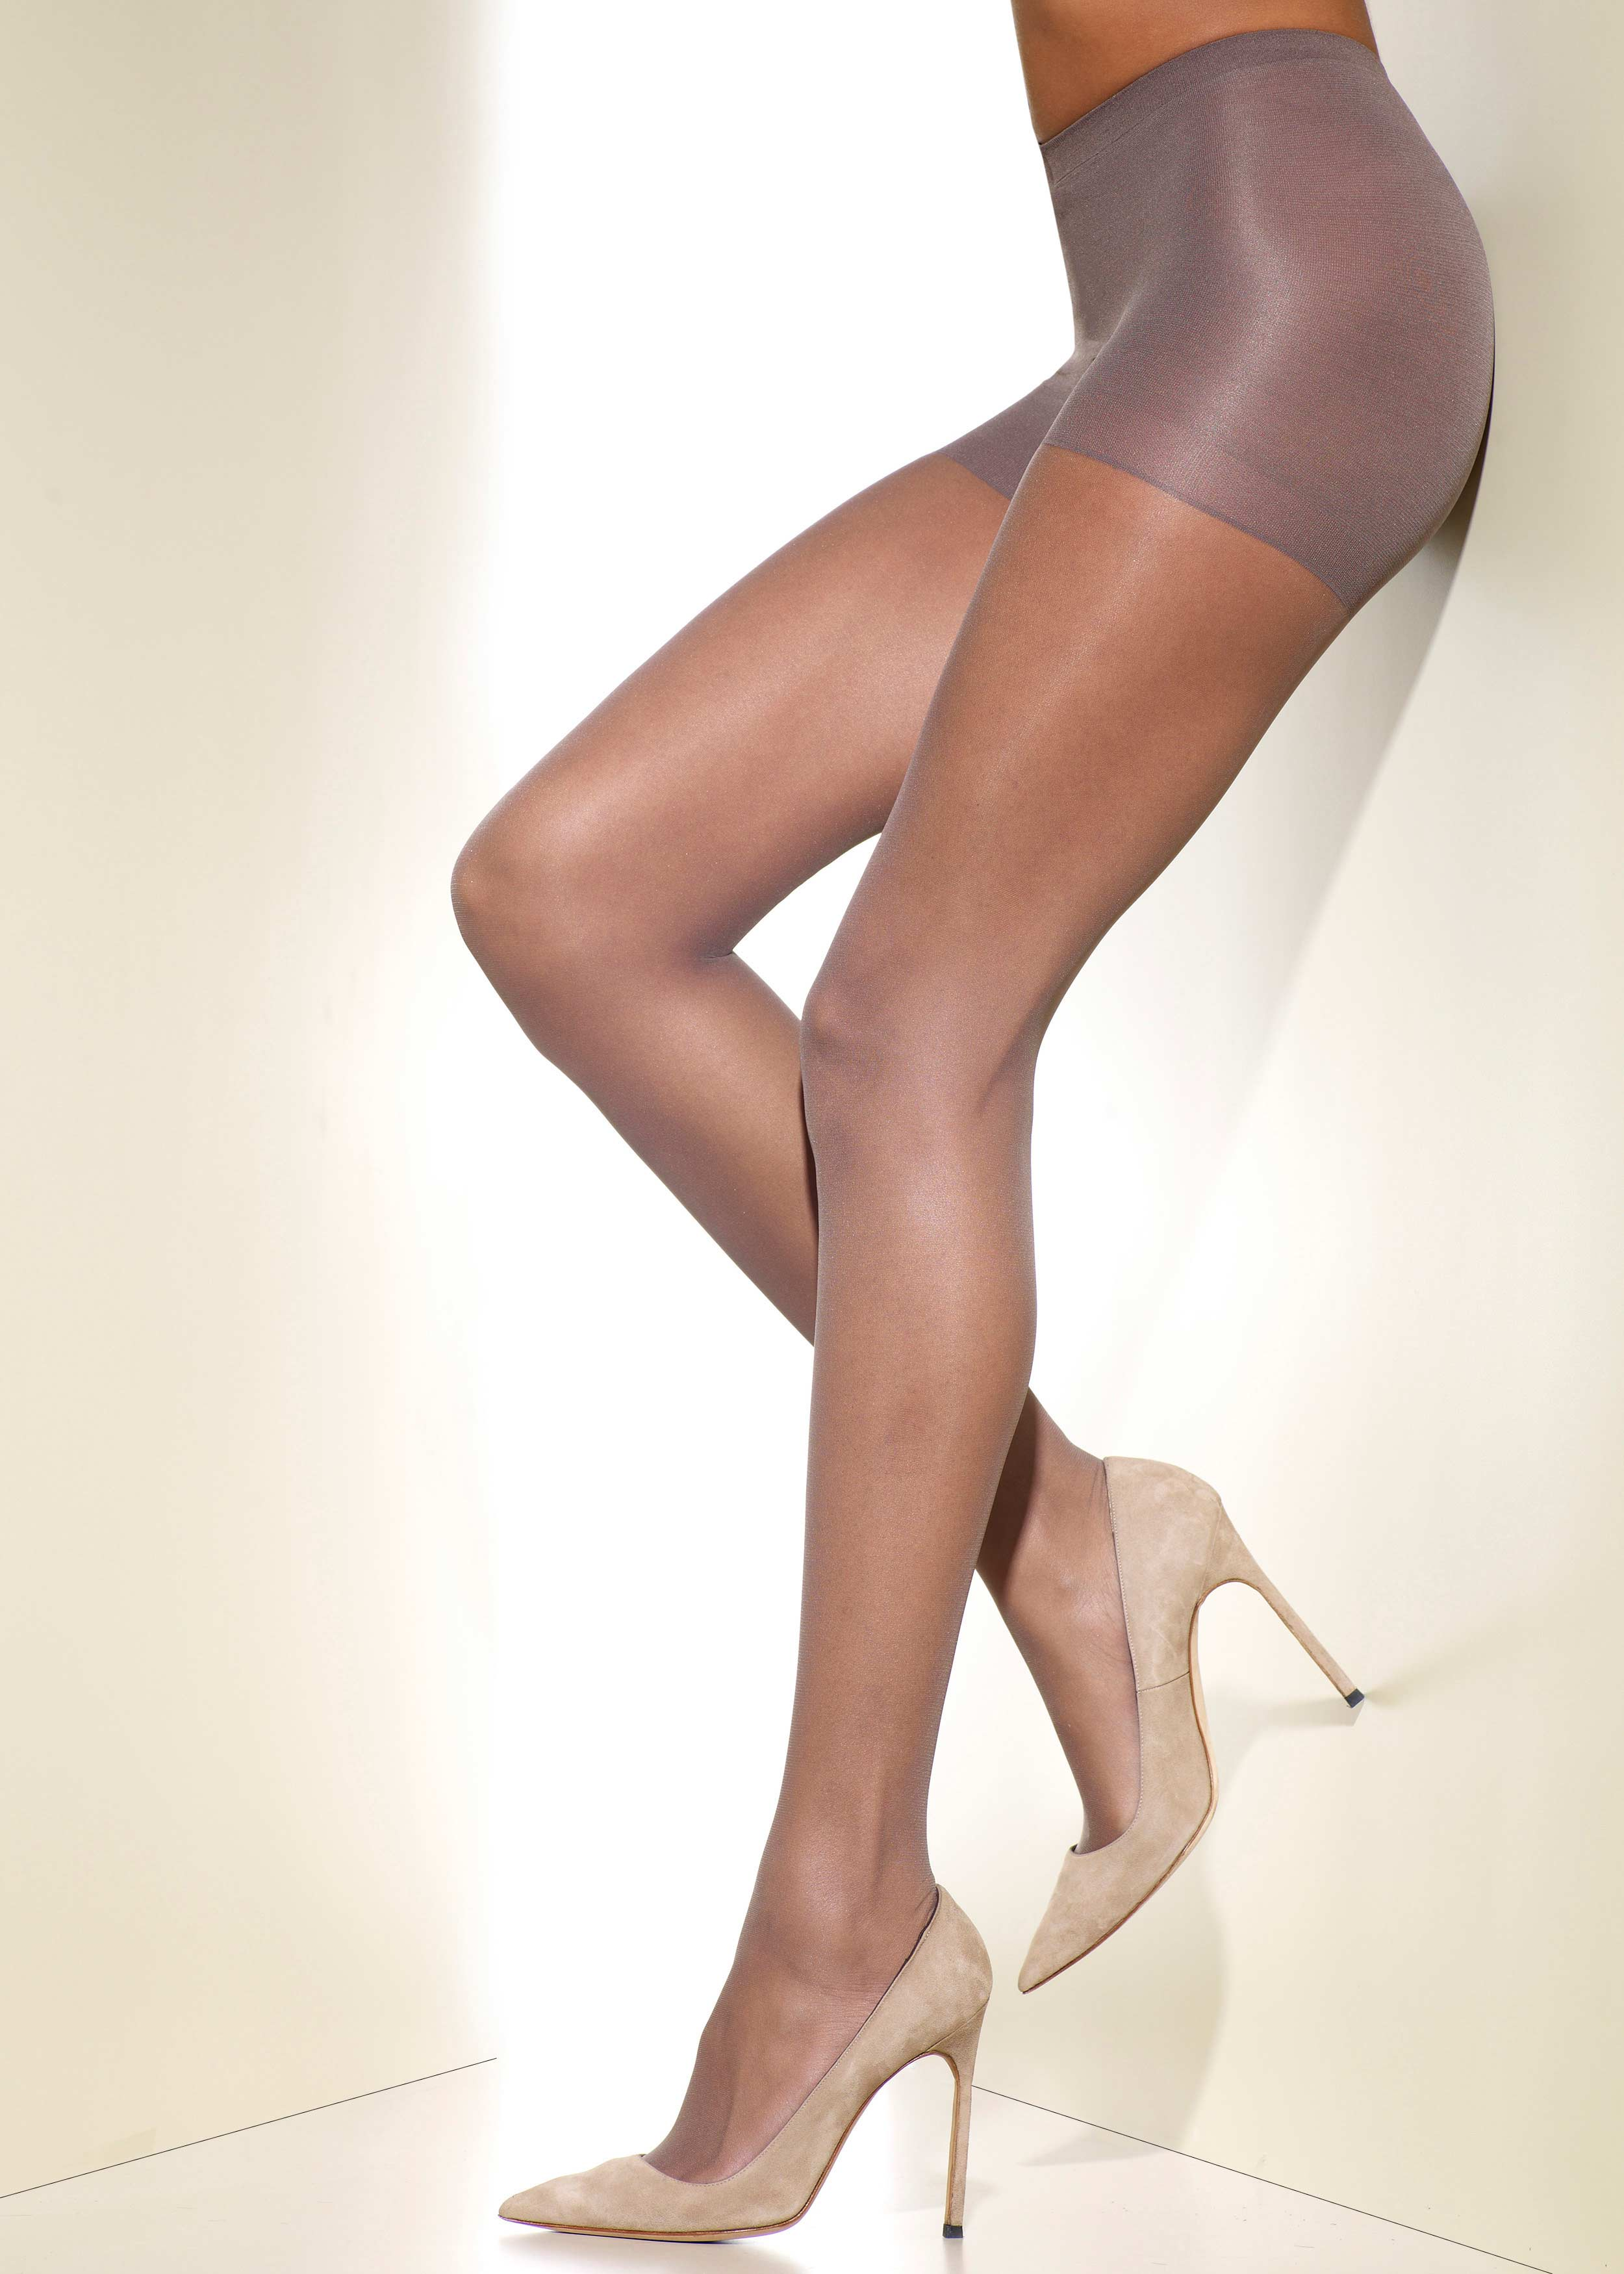 Yak reccomend Gallery pantyhose guard